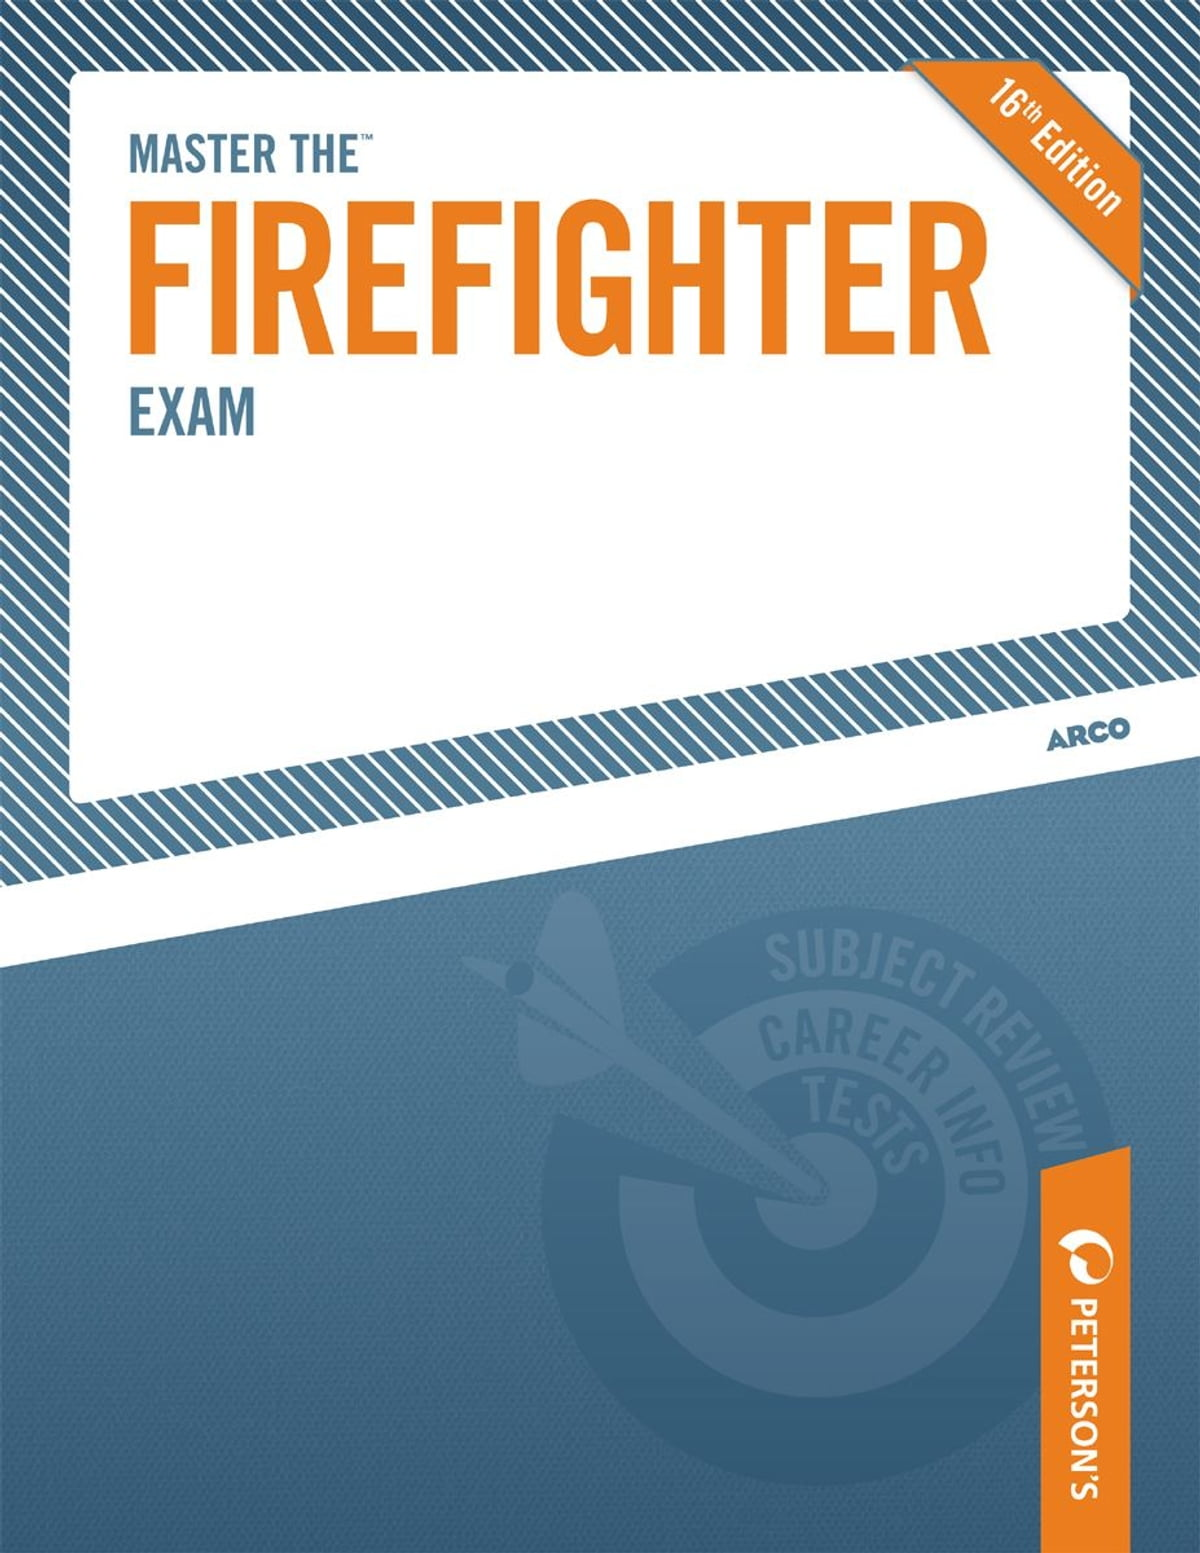 Master the Firefighter Exam eBook by Peterson\'s - 9780768935059 ...